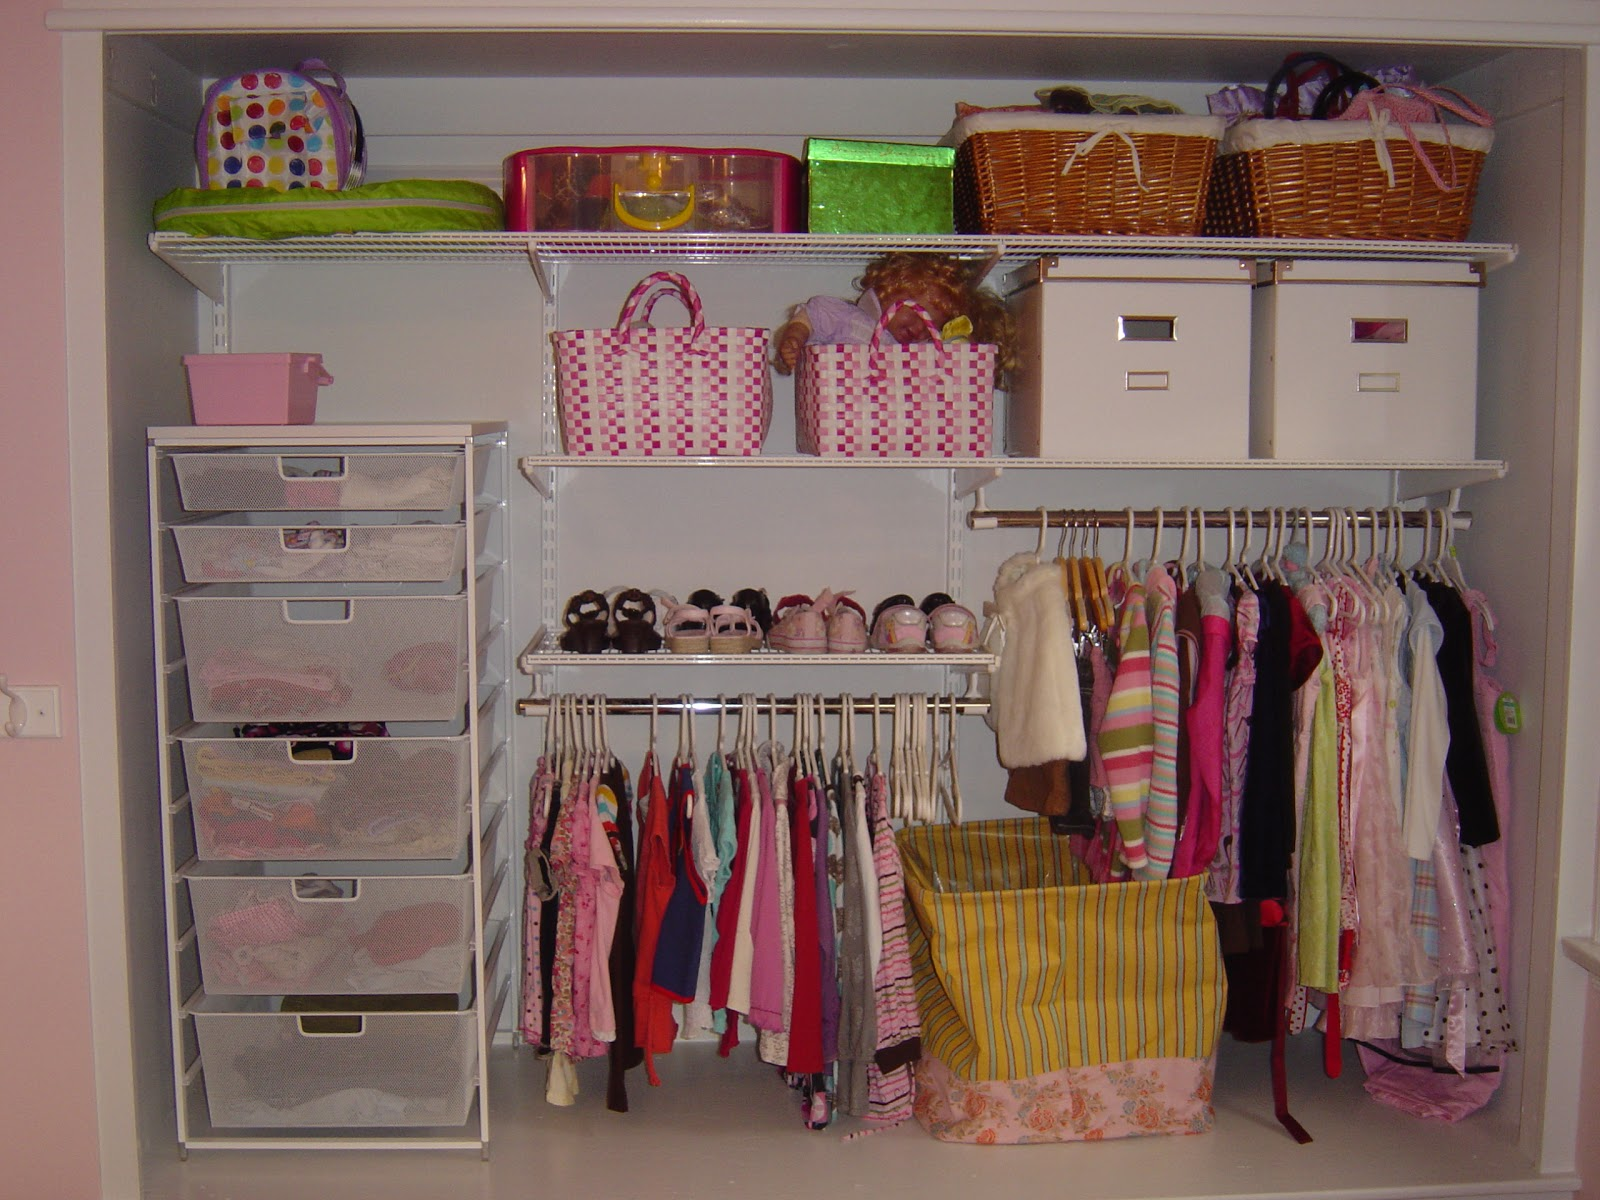 Kids Room Closet Ideas Of Kids 39 Room Project Organizing Made Fun Kids 39 Room Project